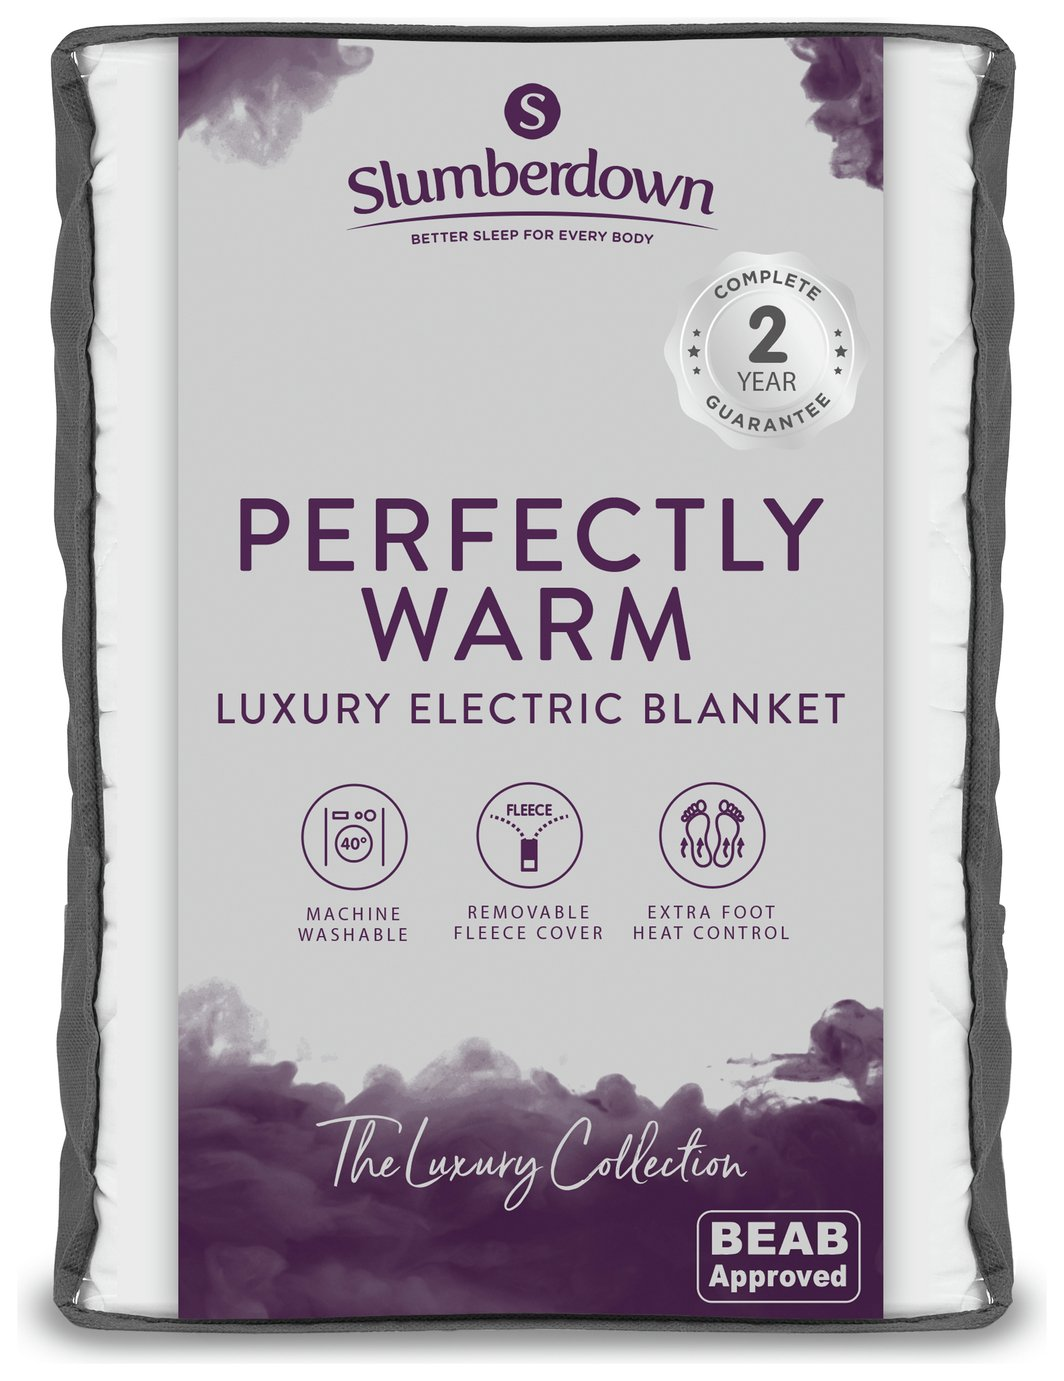 Slumberdown Electric Blanket - Kingsize